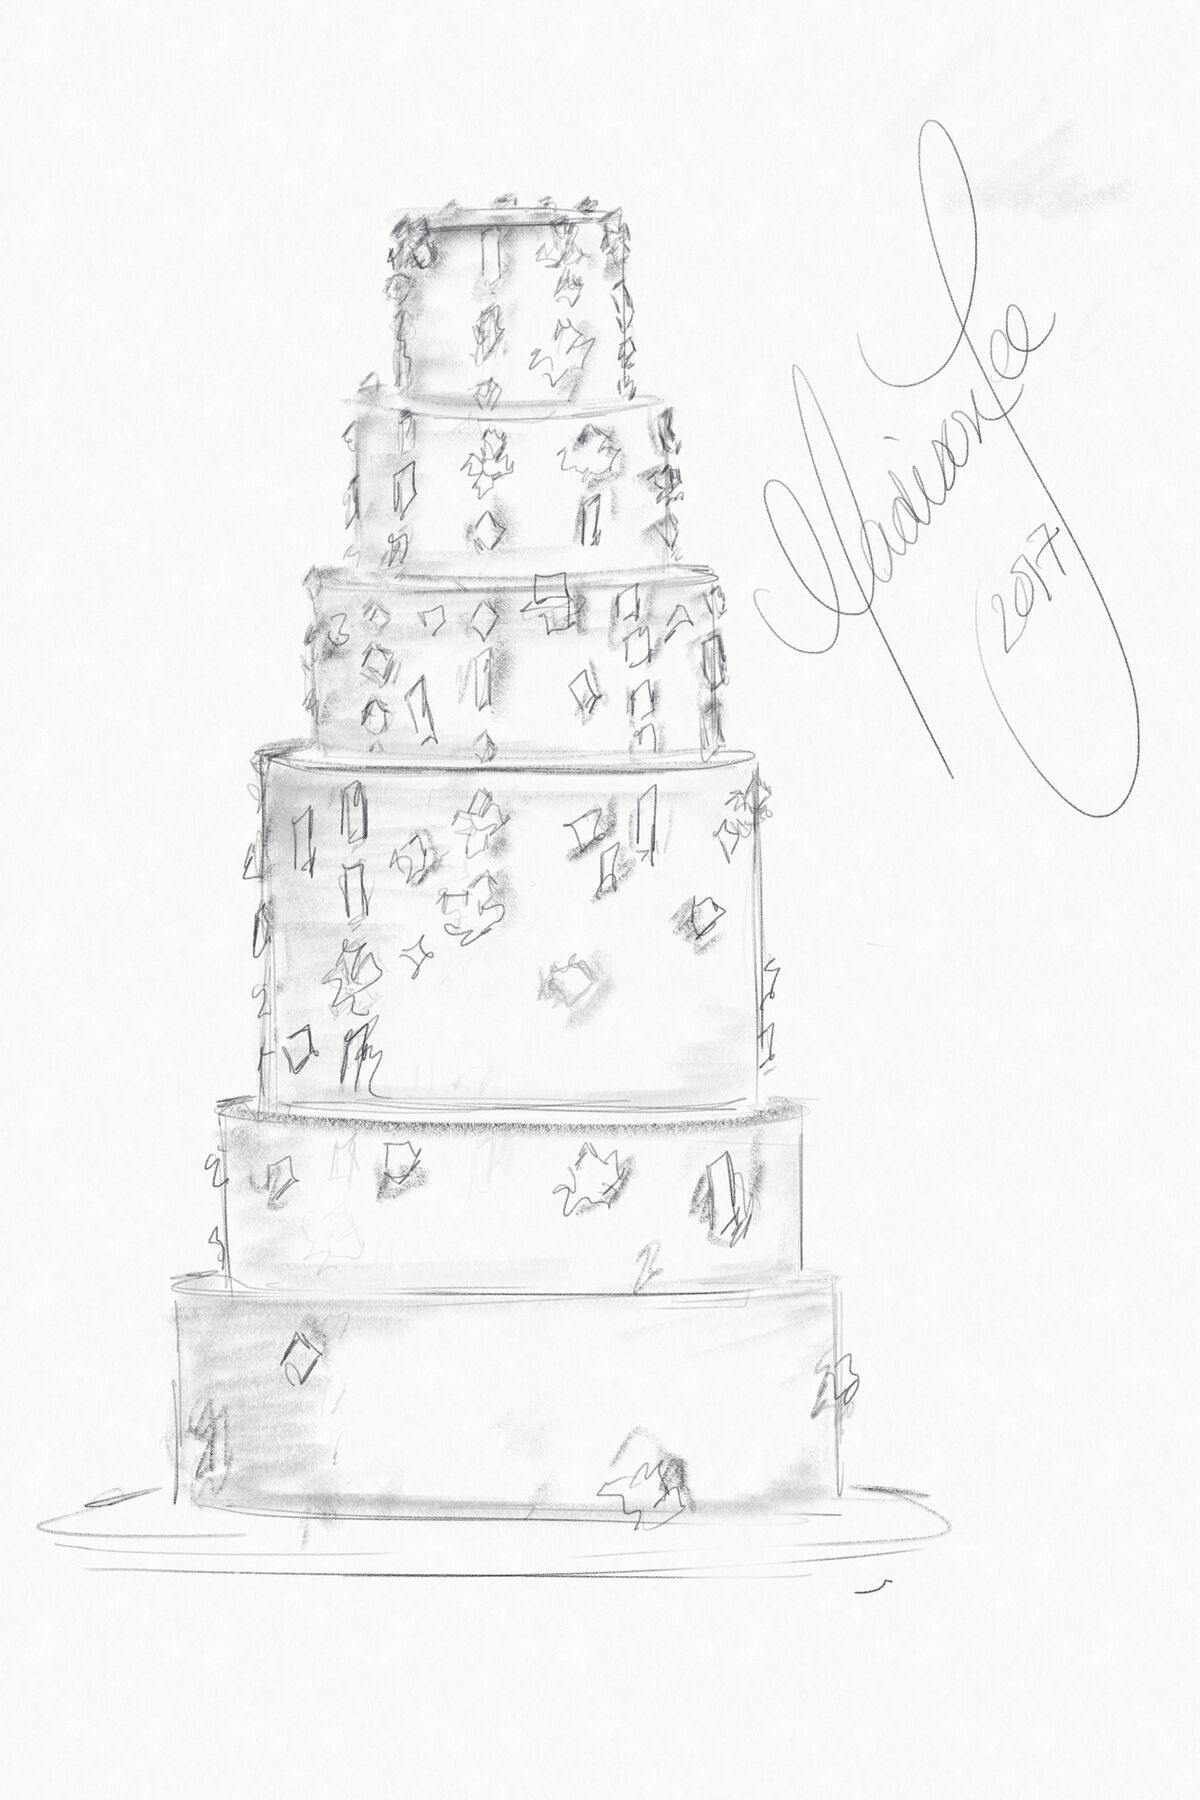 Essay About Our School Wedding Cake Sketch By Madison Lee Courtesy Of Madison Lees Cakes Search Essays In English also Violence In Media Essay The Bakers Elevating Cakes To An Art Form  Artsy Essay Ouline